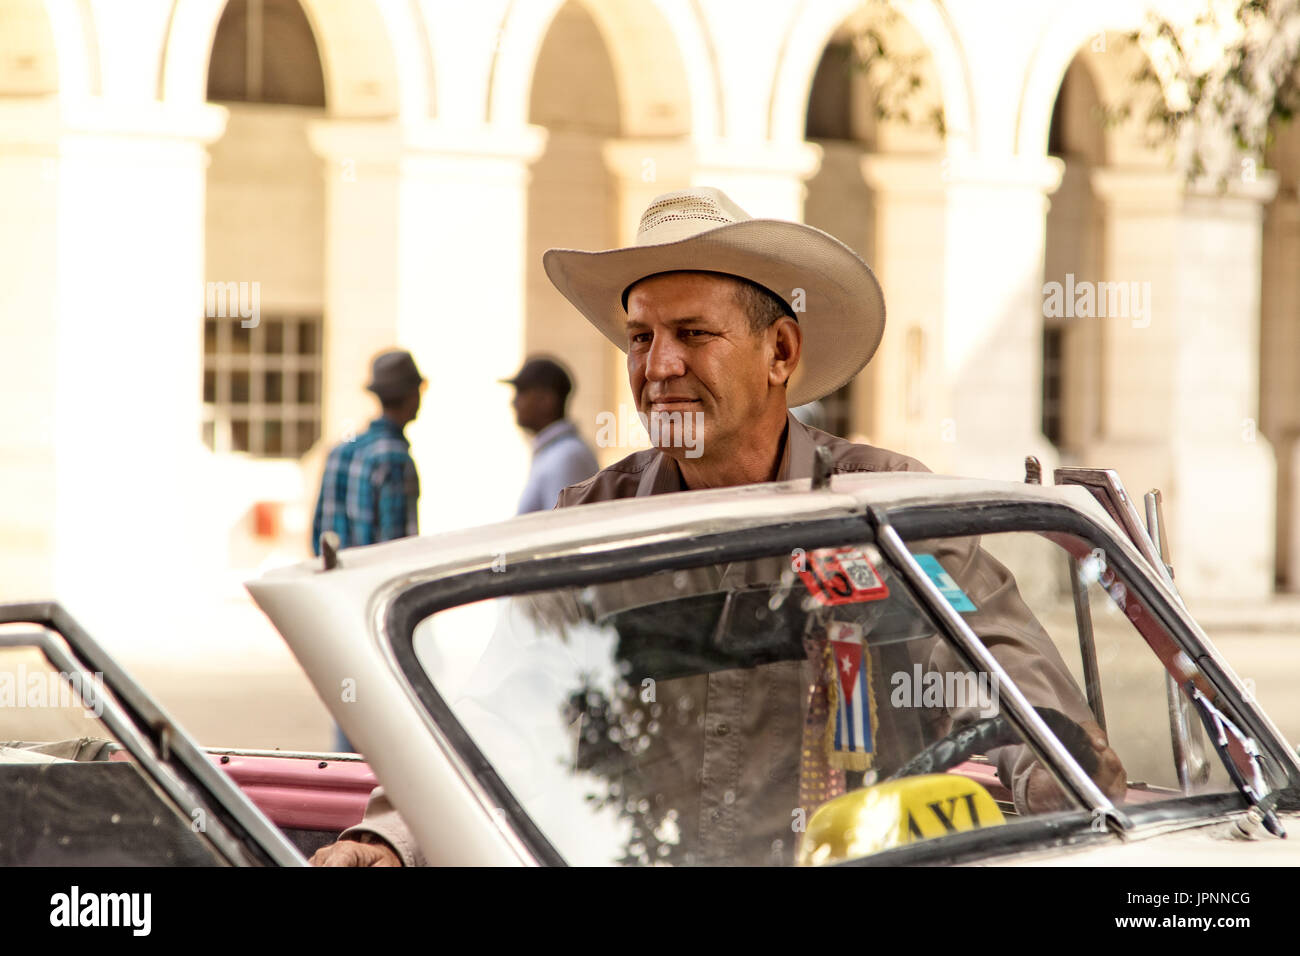 A Cuban man waits by his car for a passenger in Havana, Cuba - Stock Image